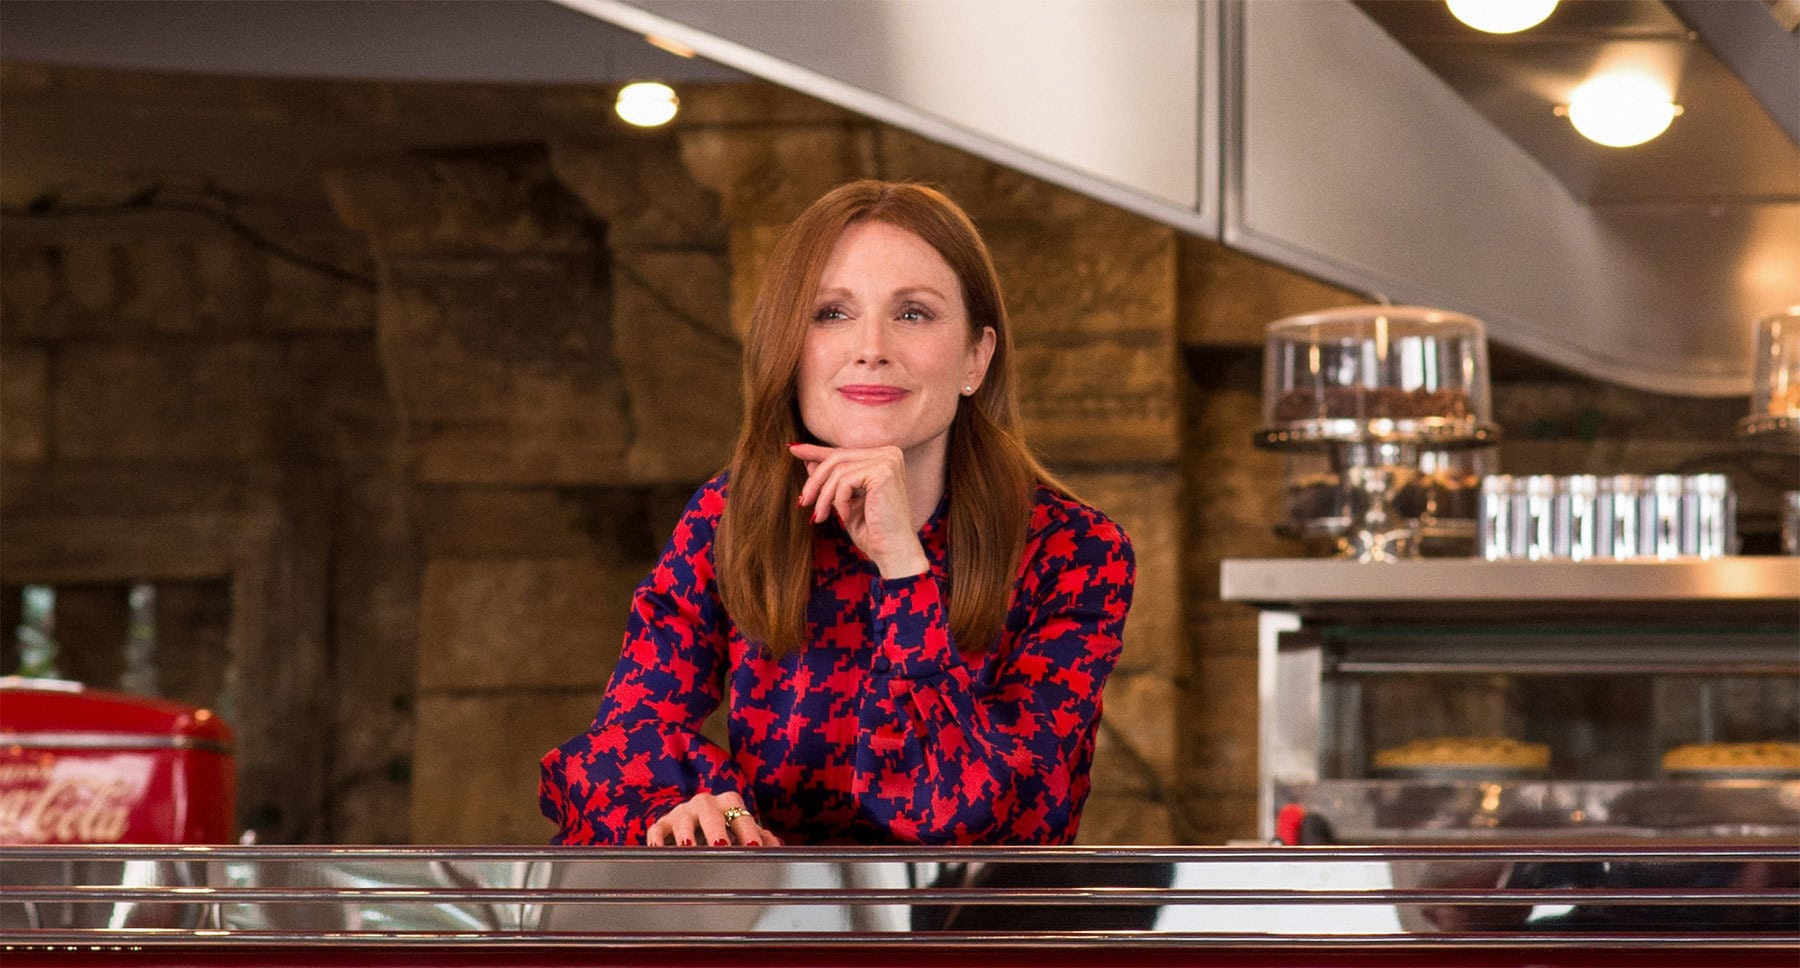 Julianne Moore (as Poppy) sitting at a counter in Kingsman: The Golden Circle